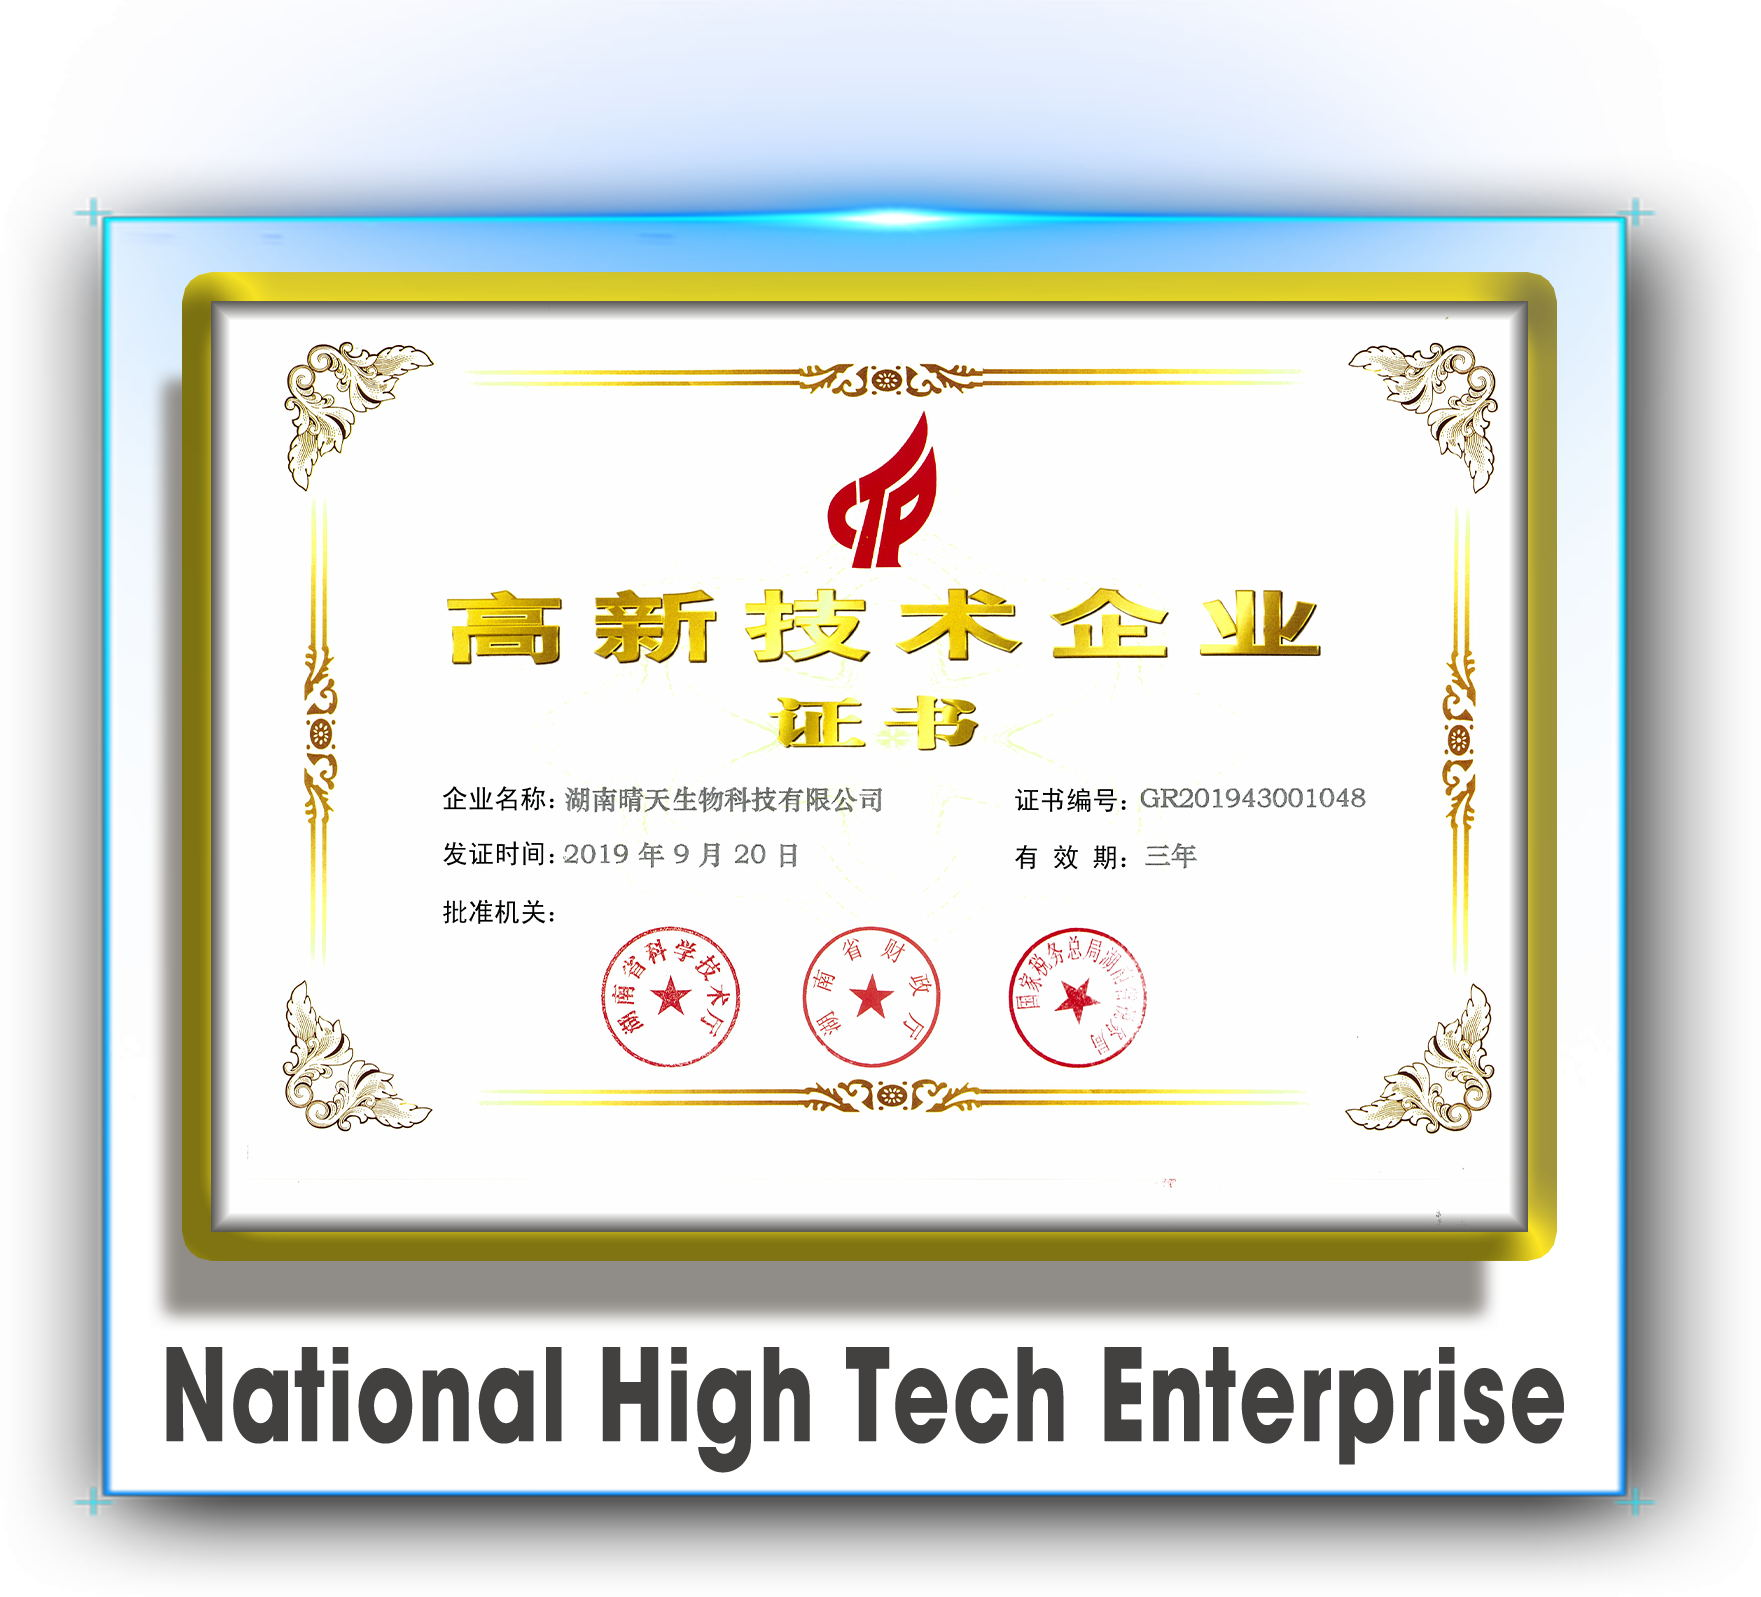 National High-Tech Enterprise, sqt Spongilla Spicules 2.0, China biological technology company